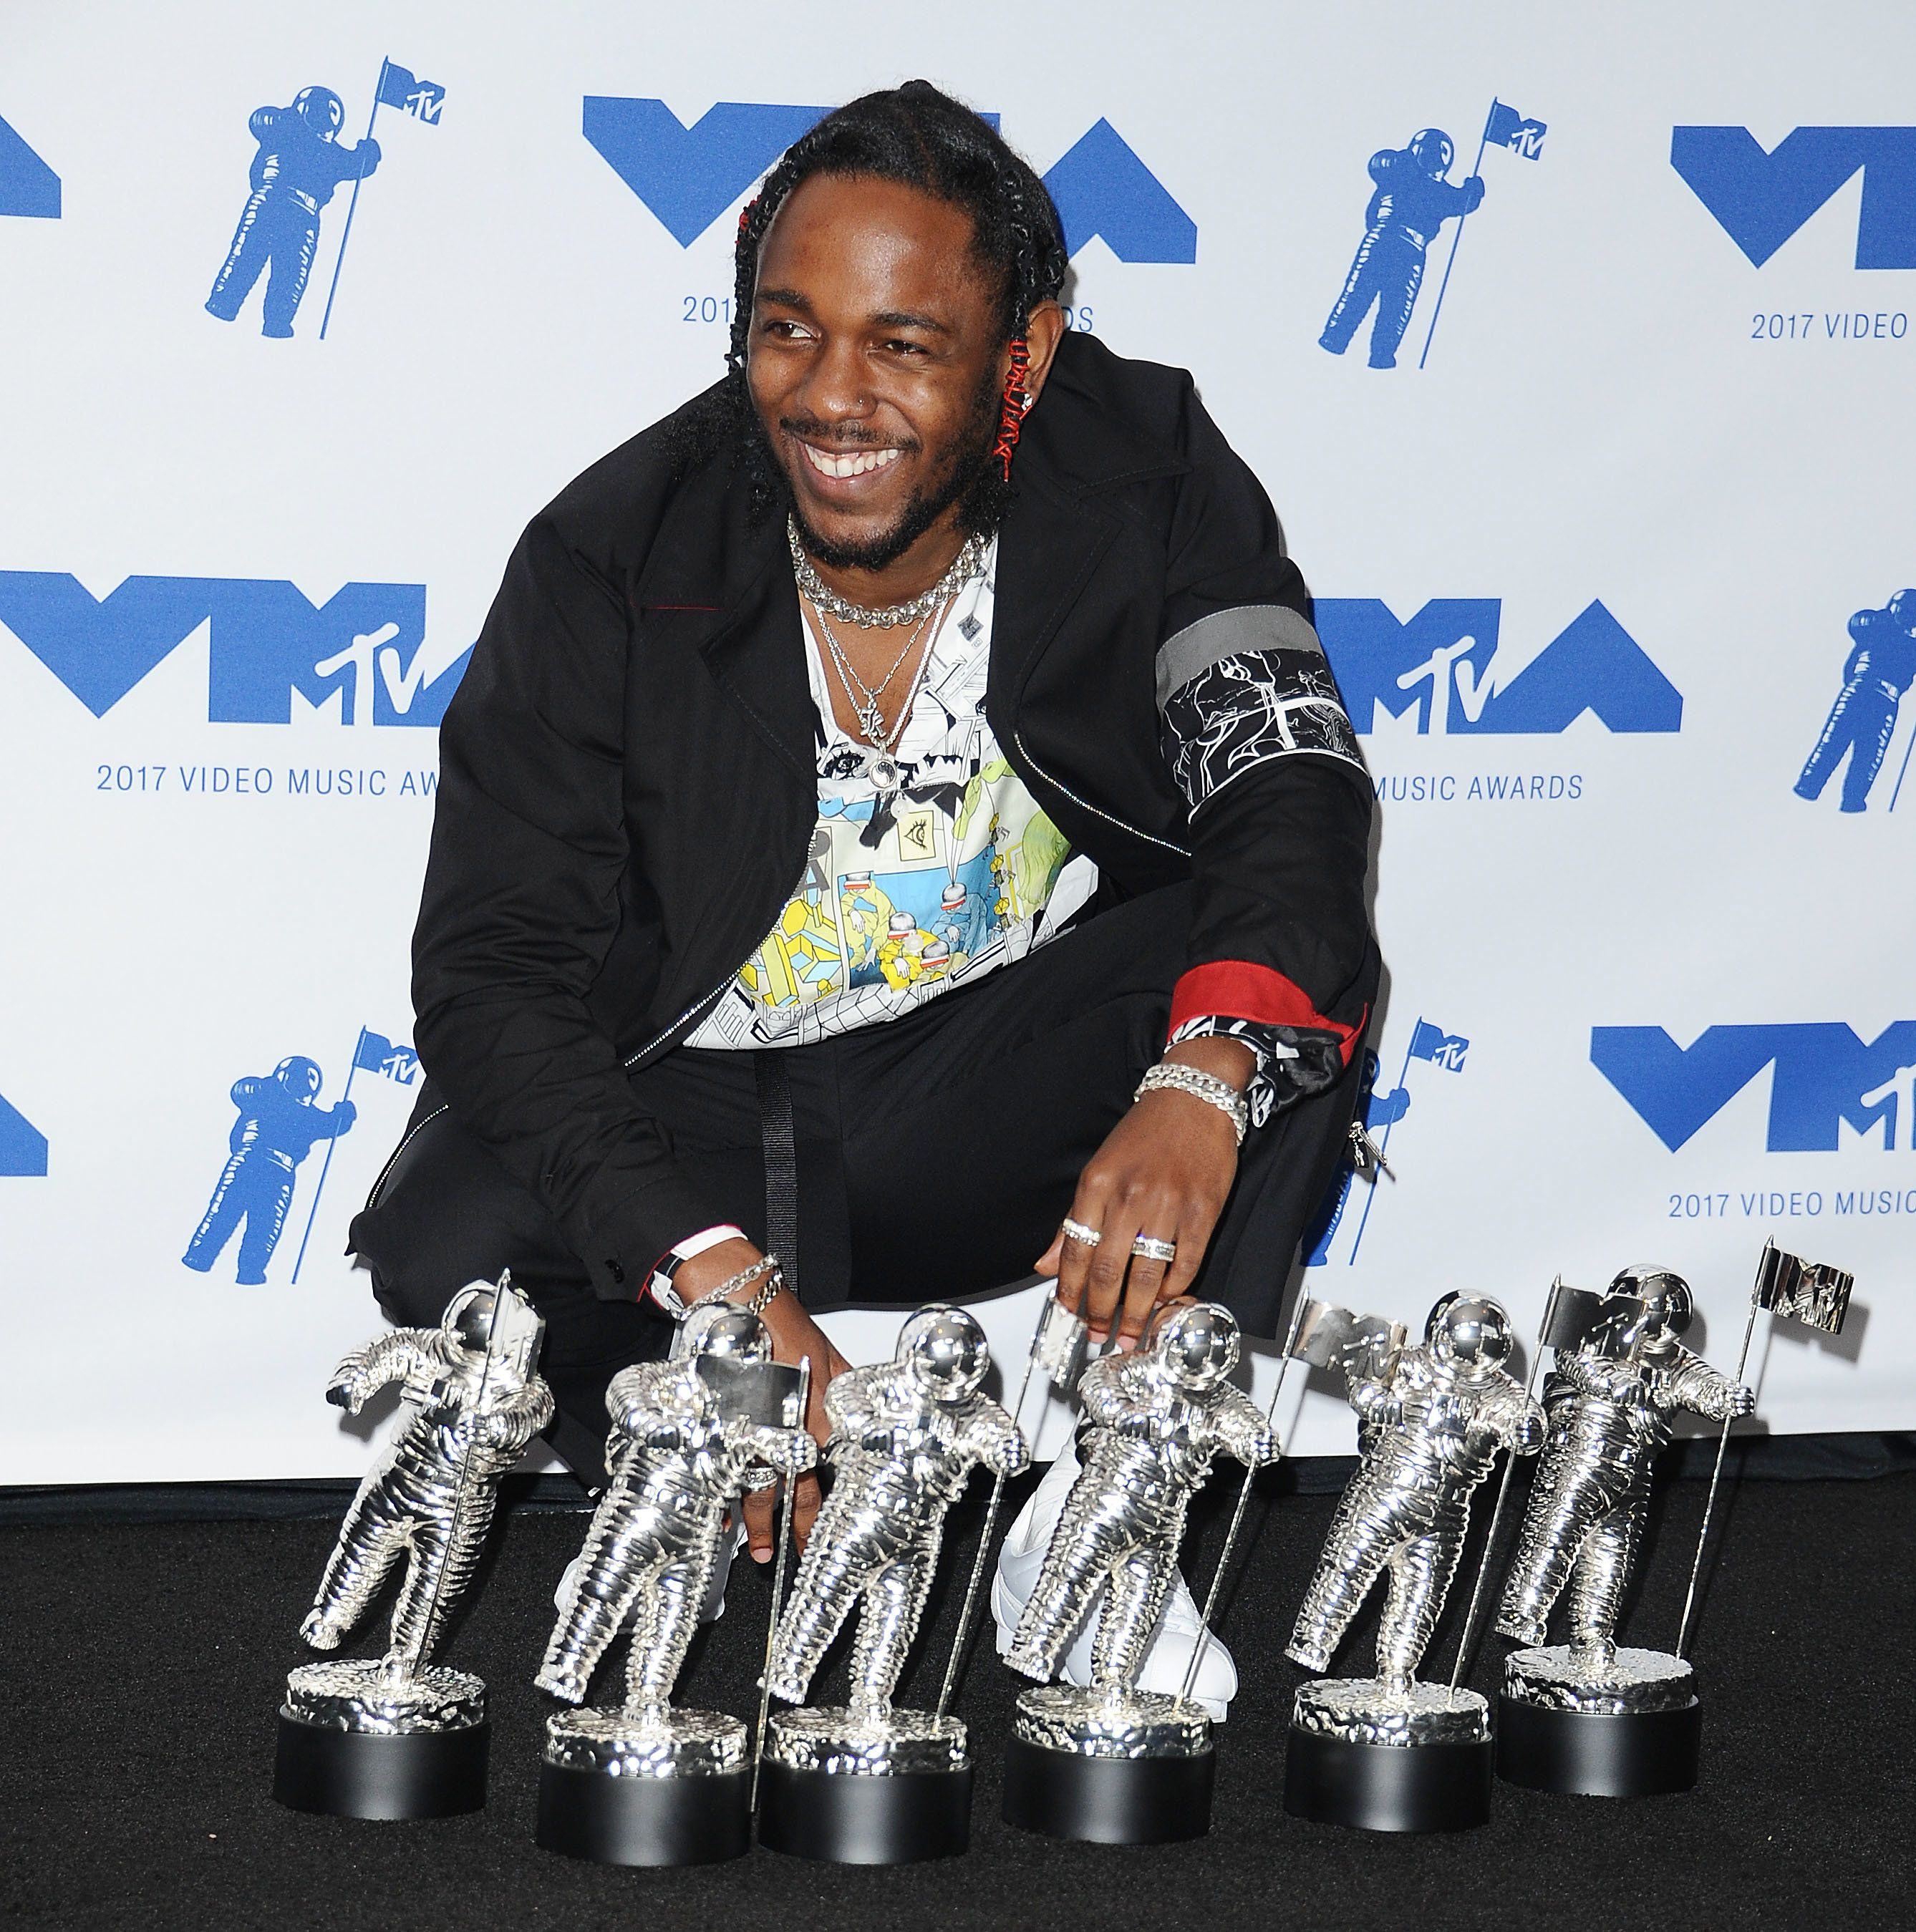 Kendrick Lamar Storms VMAs With Killer Performance AND Most